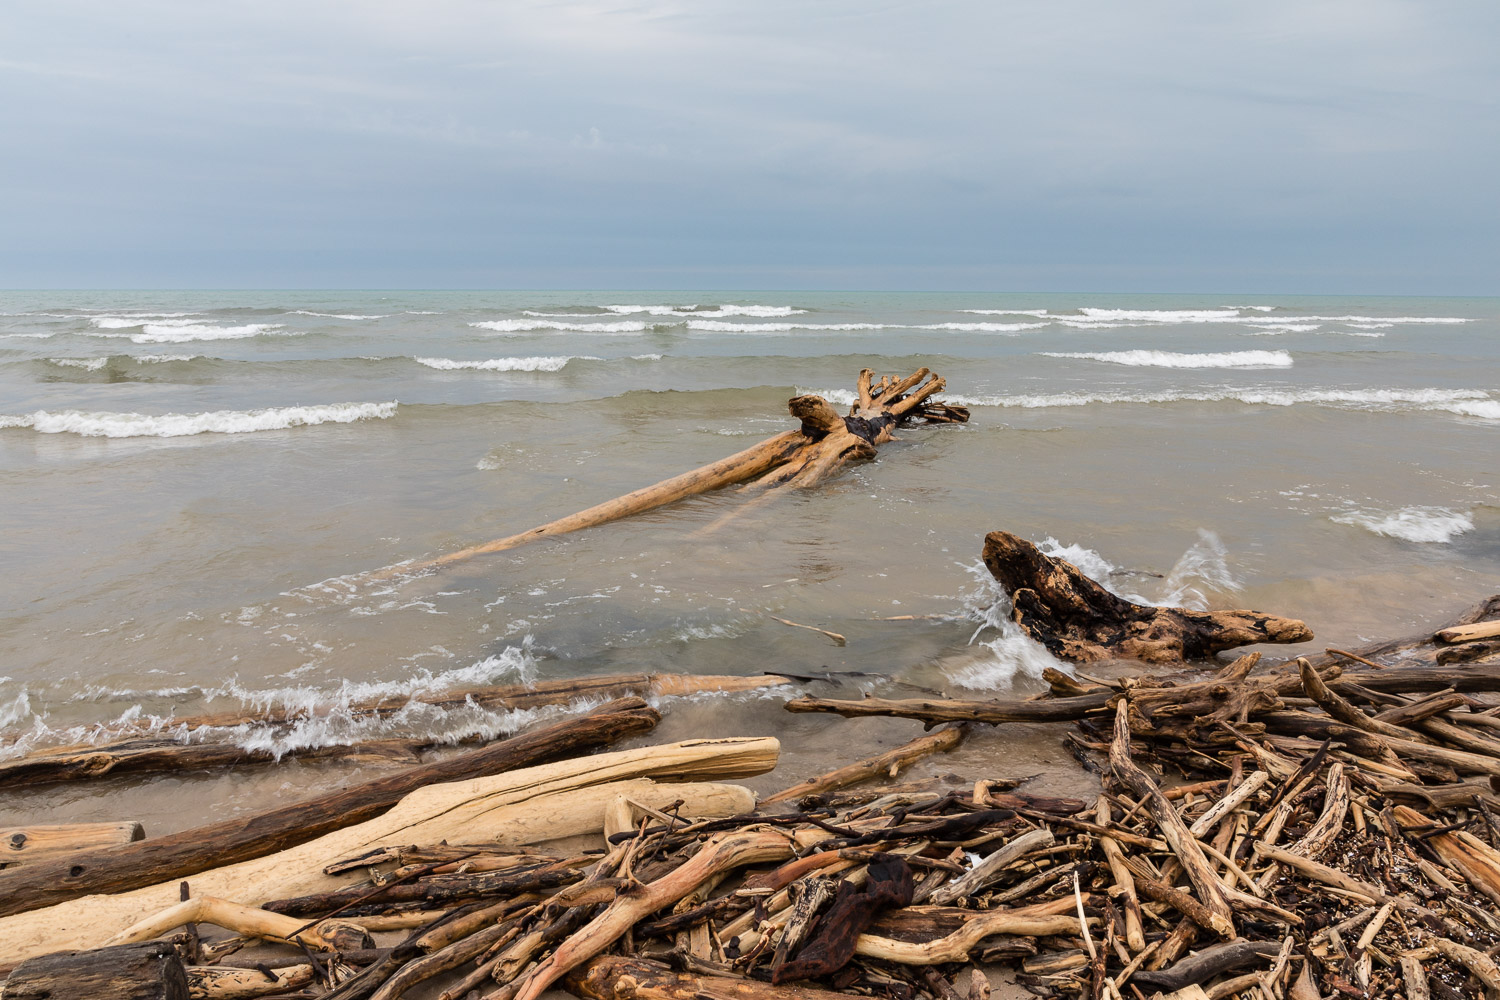 Driftwood Building up on Shore